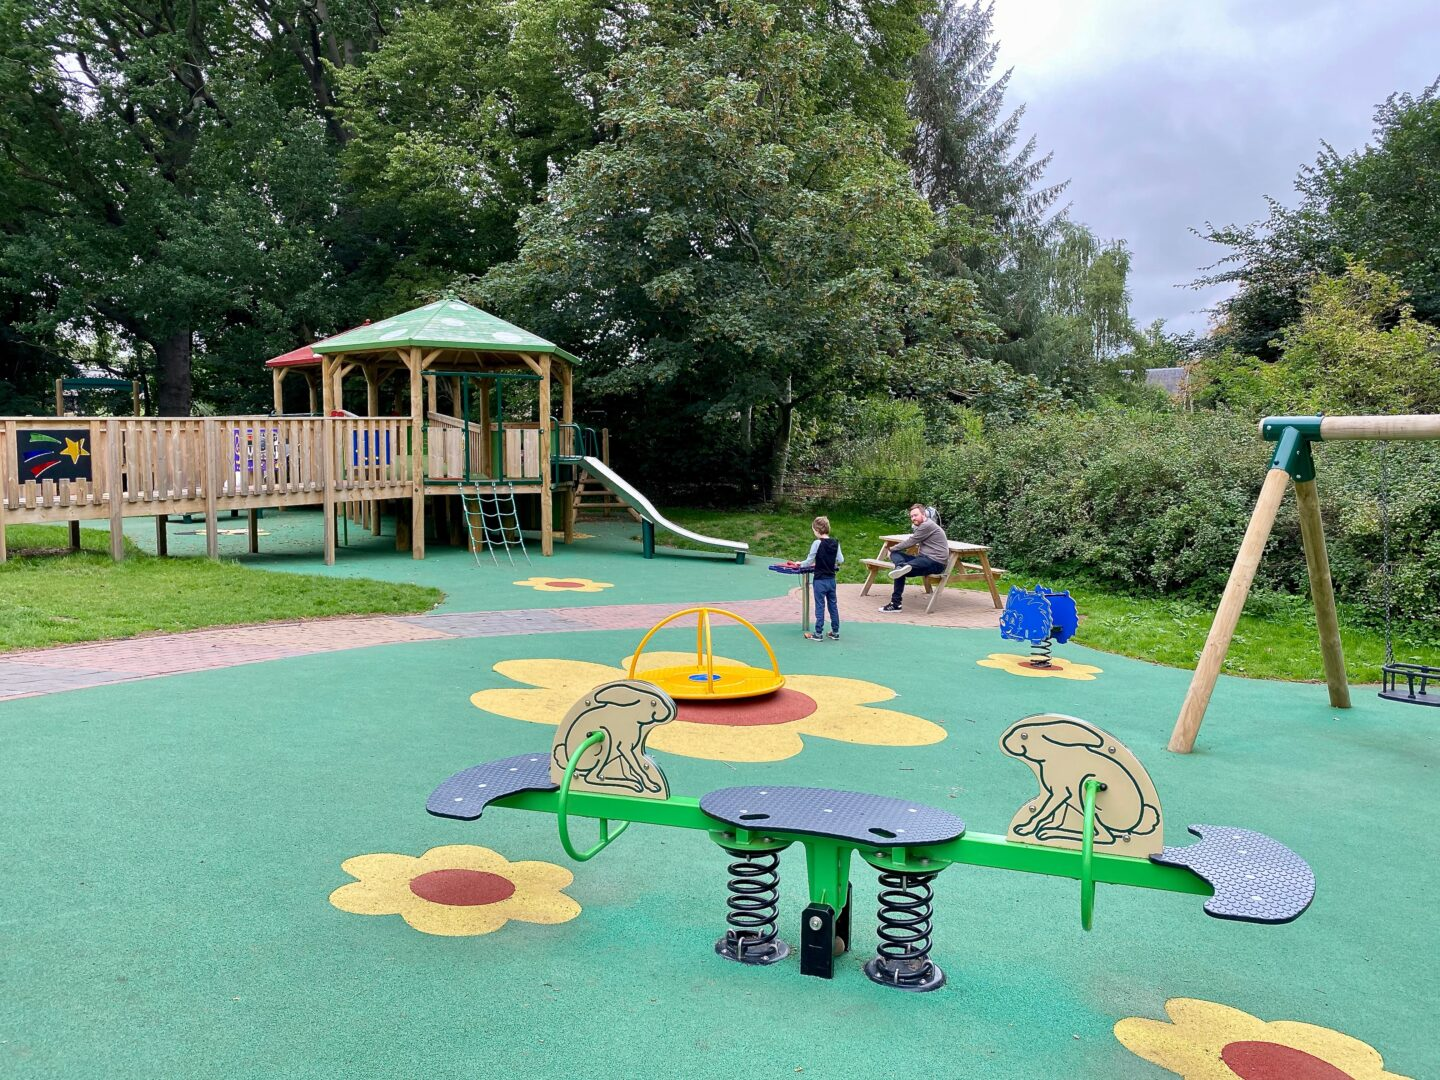 A play park showing a slide, climbing apparatus and a see saw